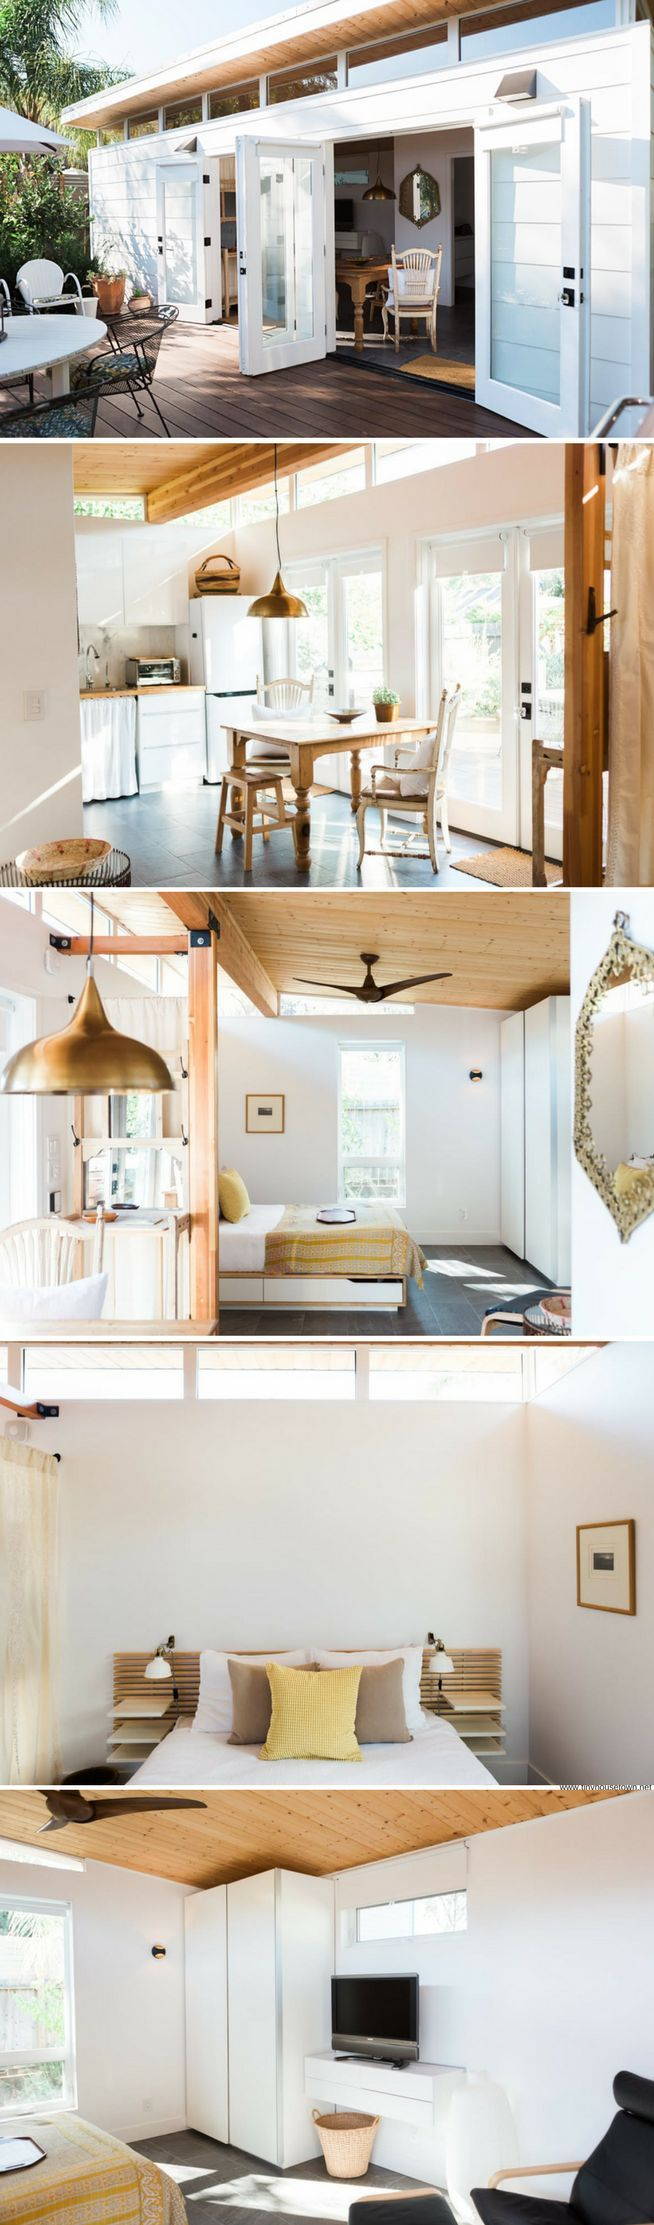 A 364 sq ft California guesthouse with